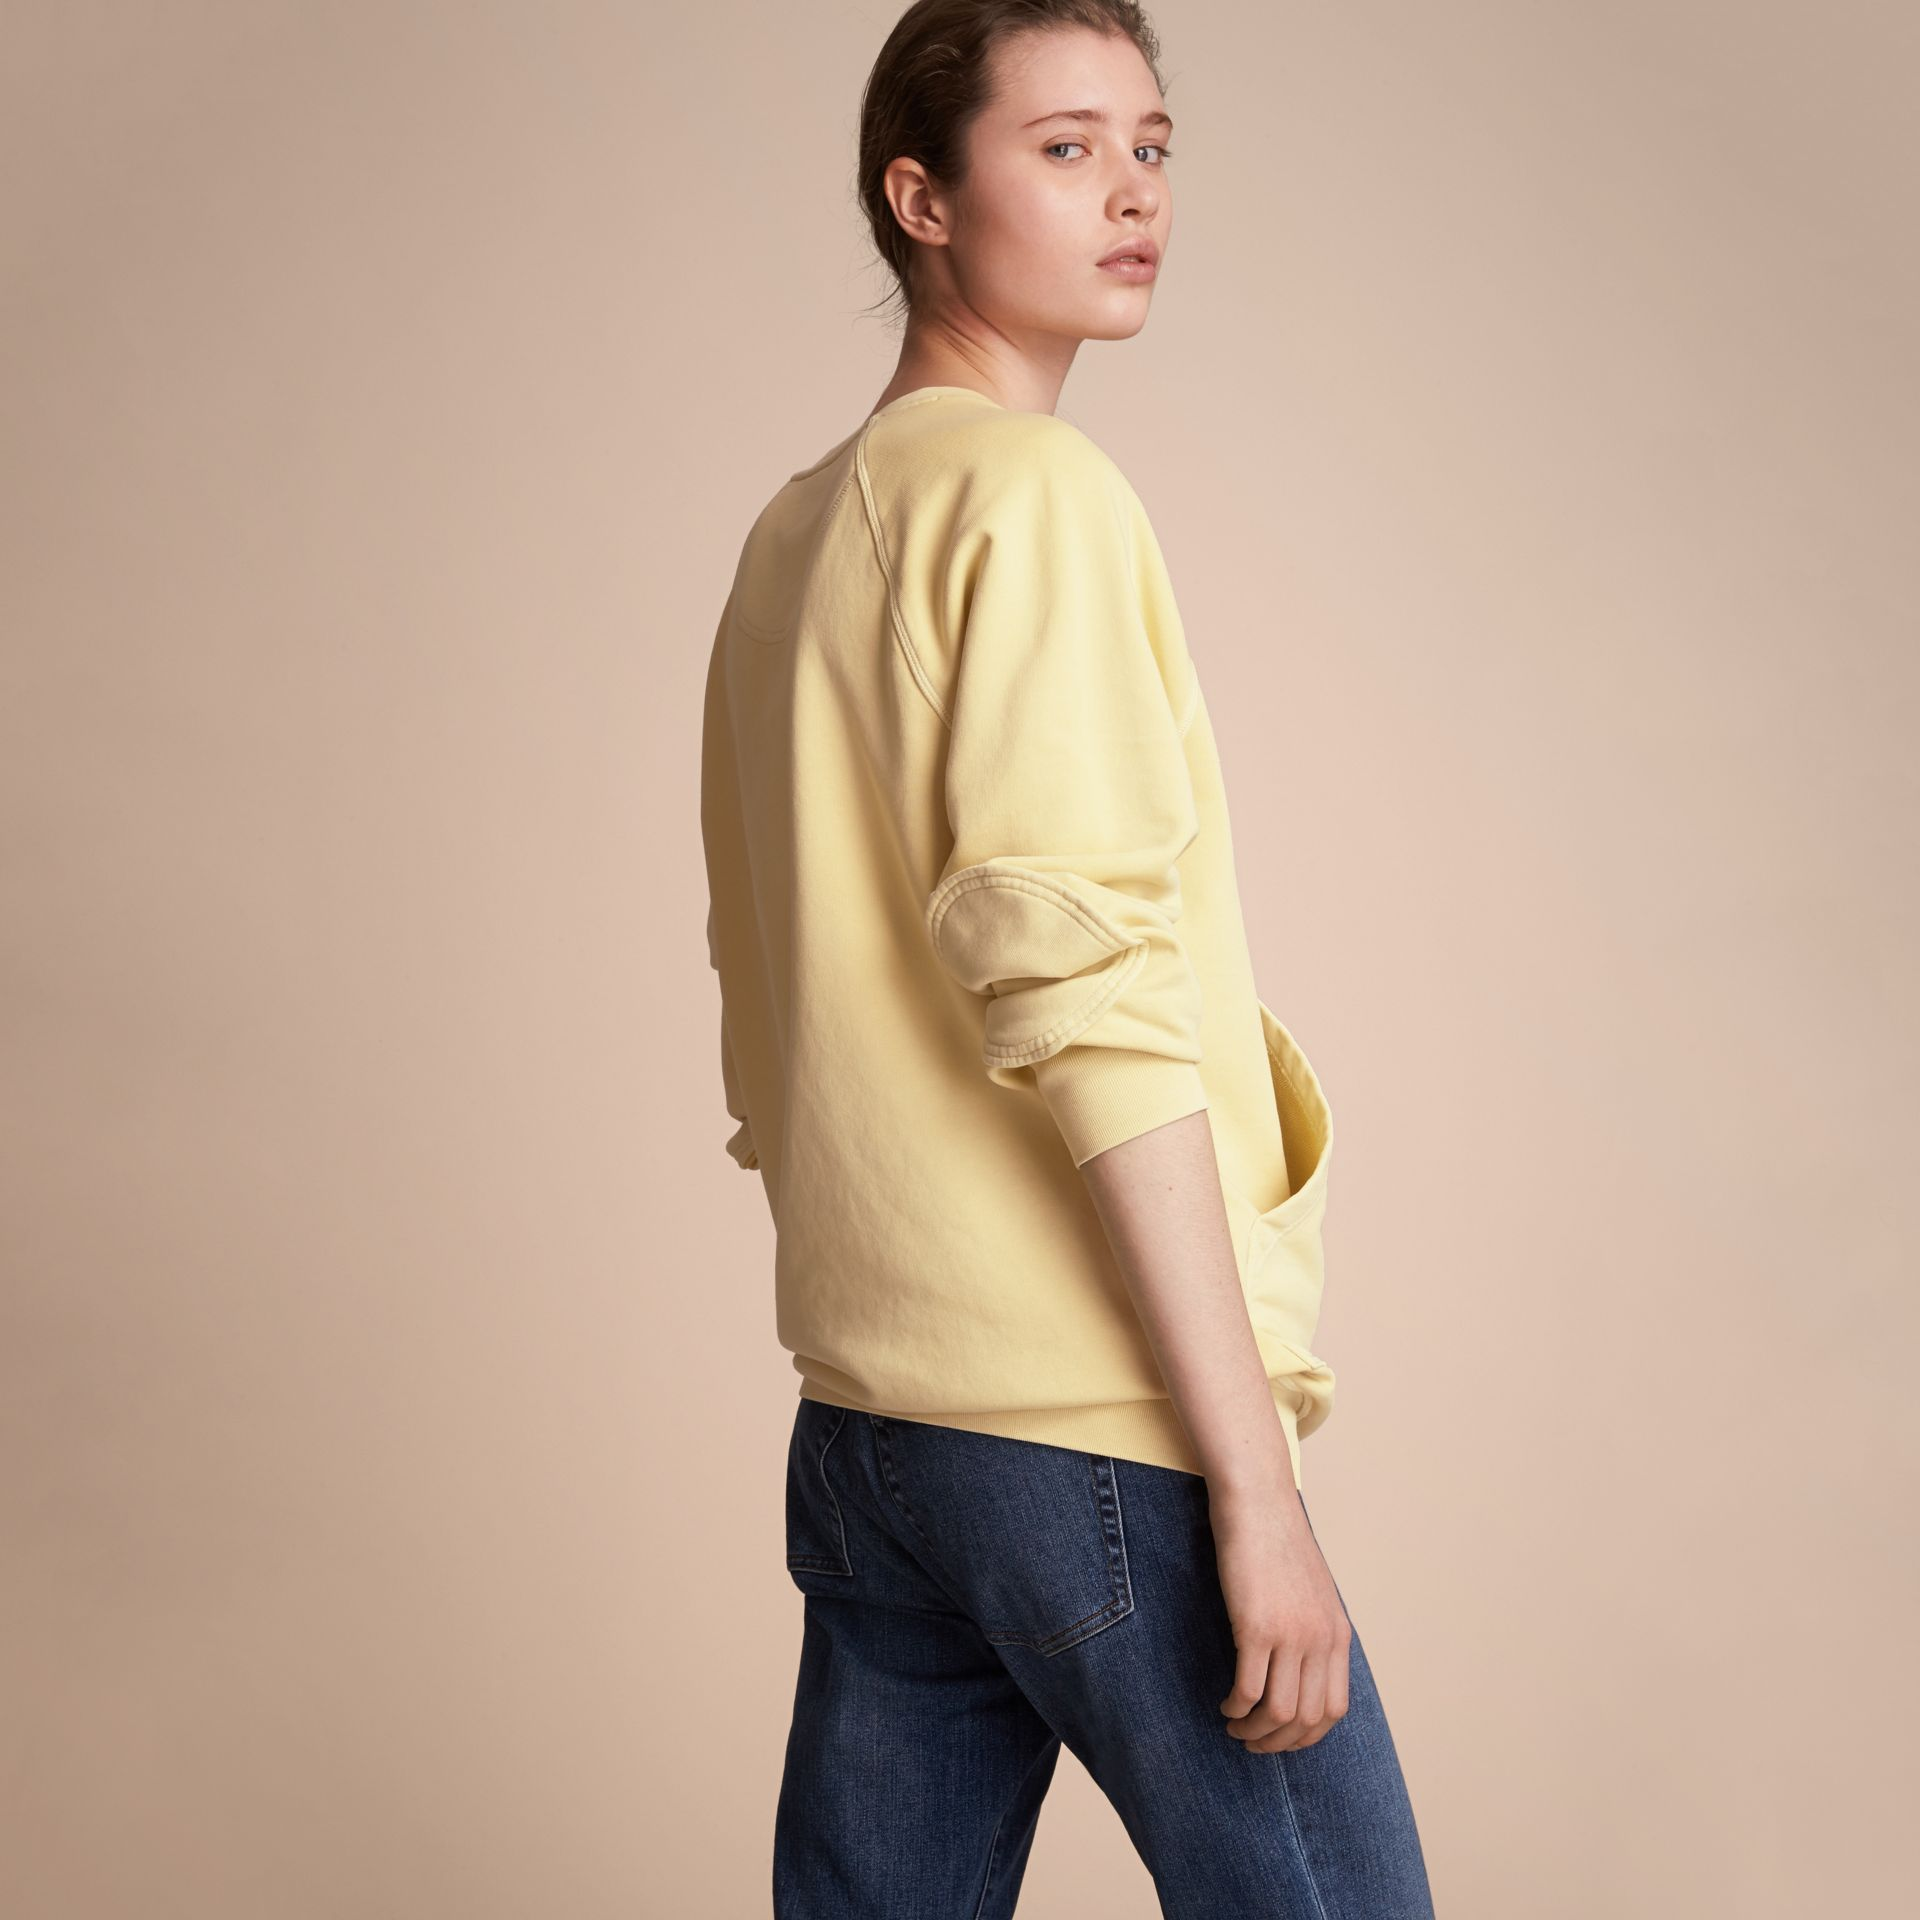 Unisex Pigment-dyed Cotton Oversize Sweatshirt in Pale Yellow - Women | Burberry Hong Kong - gallery image 3